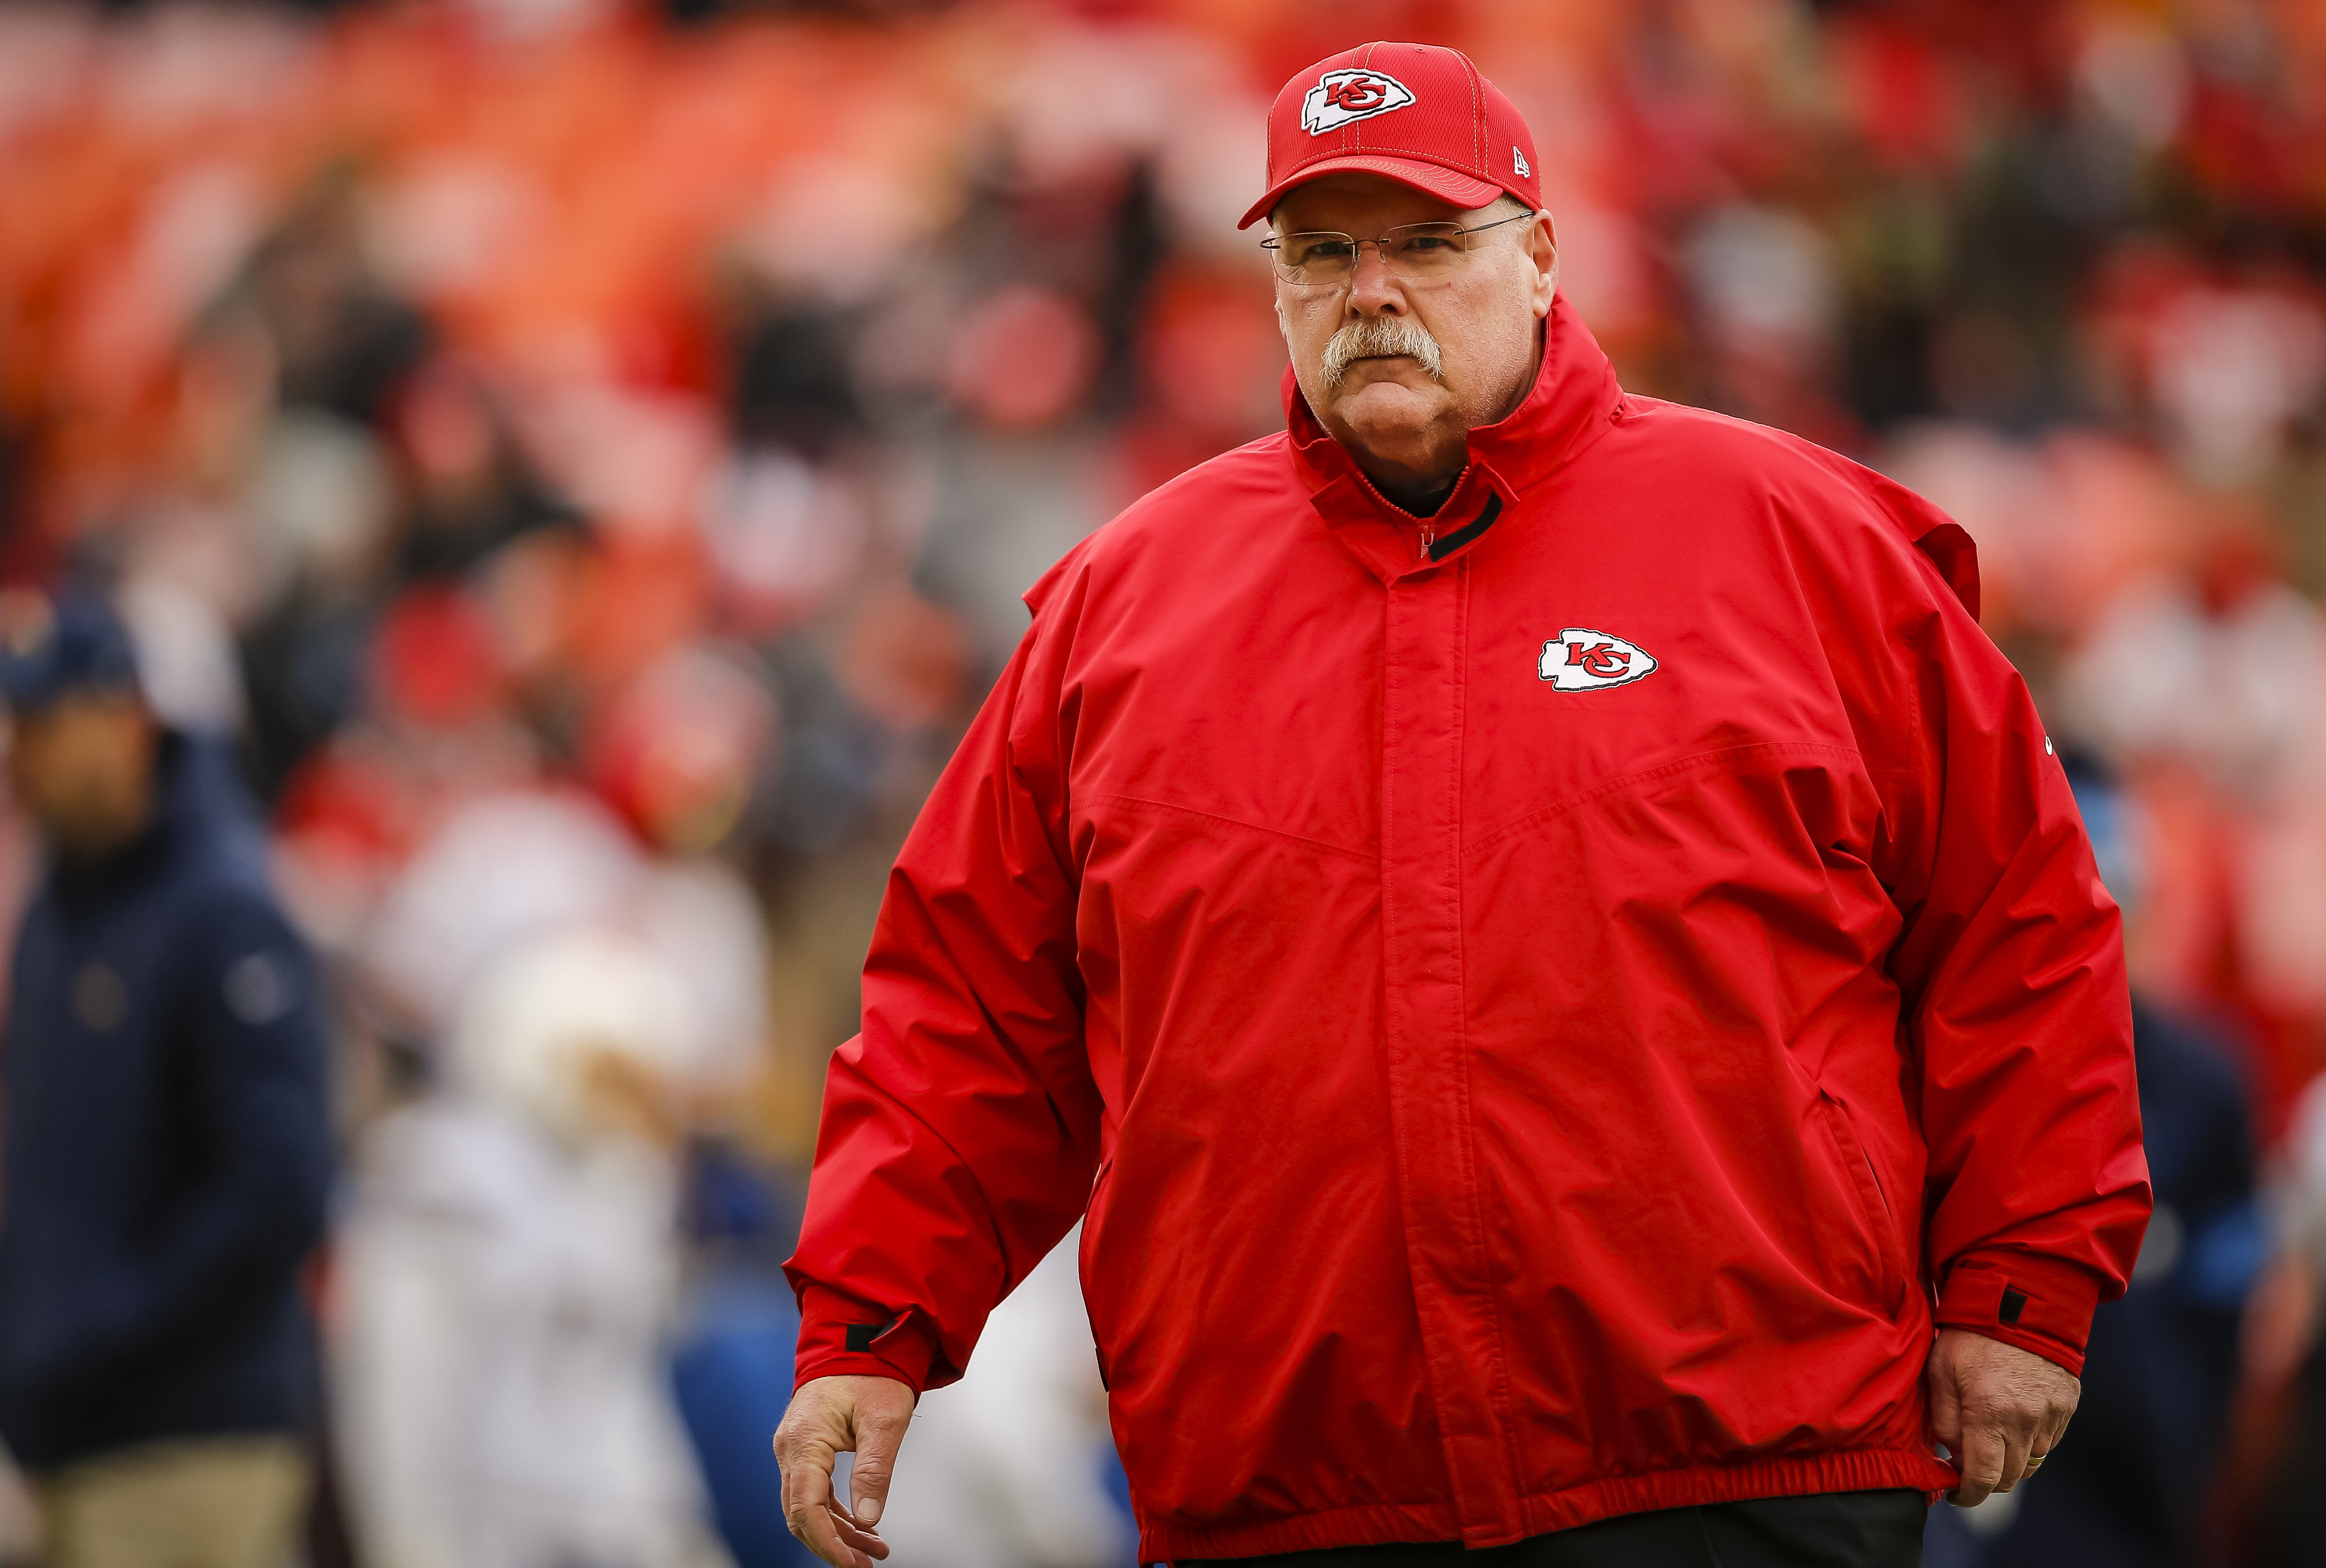 Andy Reid walks the football field during pregame warmups prior to the game against the Los Angeles Chargers at Arrowhead Stadium on December 29, 2019 in Kansas City, Missouri | Photo: Getty Images